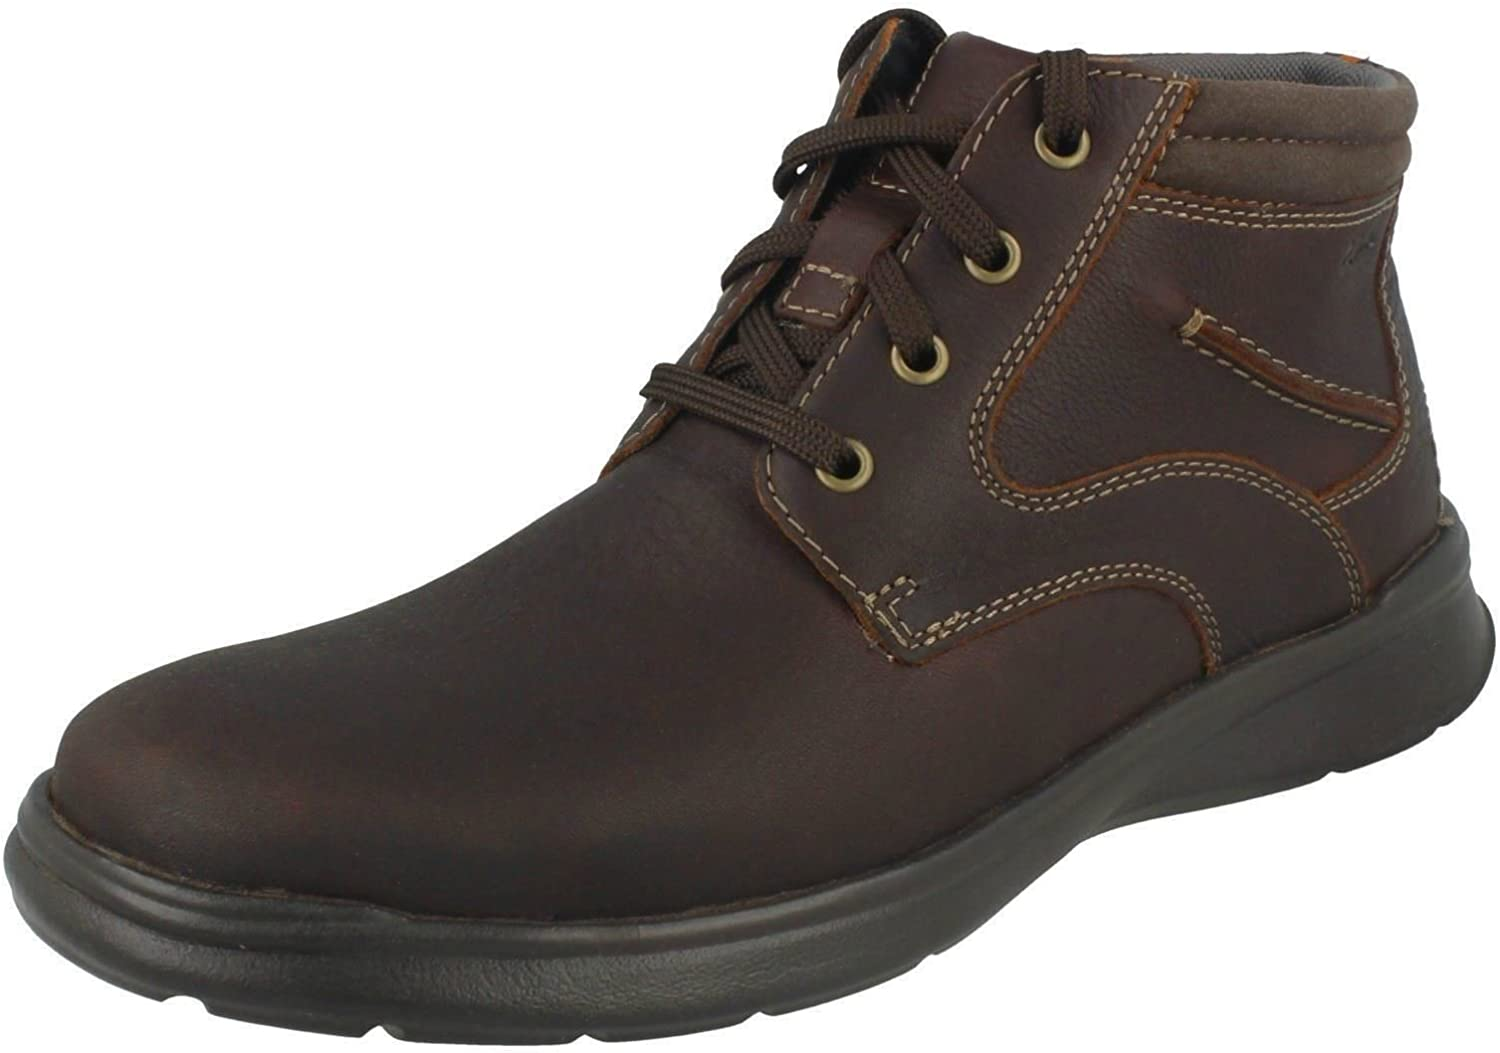 Clarks Mens Casual Lace Up Ankle Boots Cotrell Rise - Brown Leather - UK Size 9H - EU Size 43 - US Size 10W